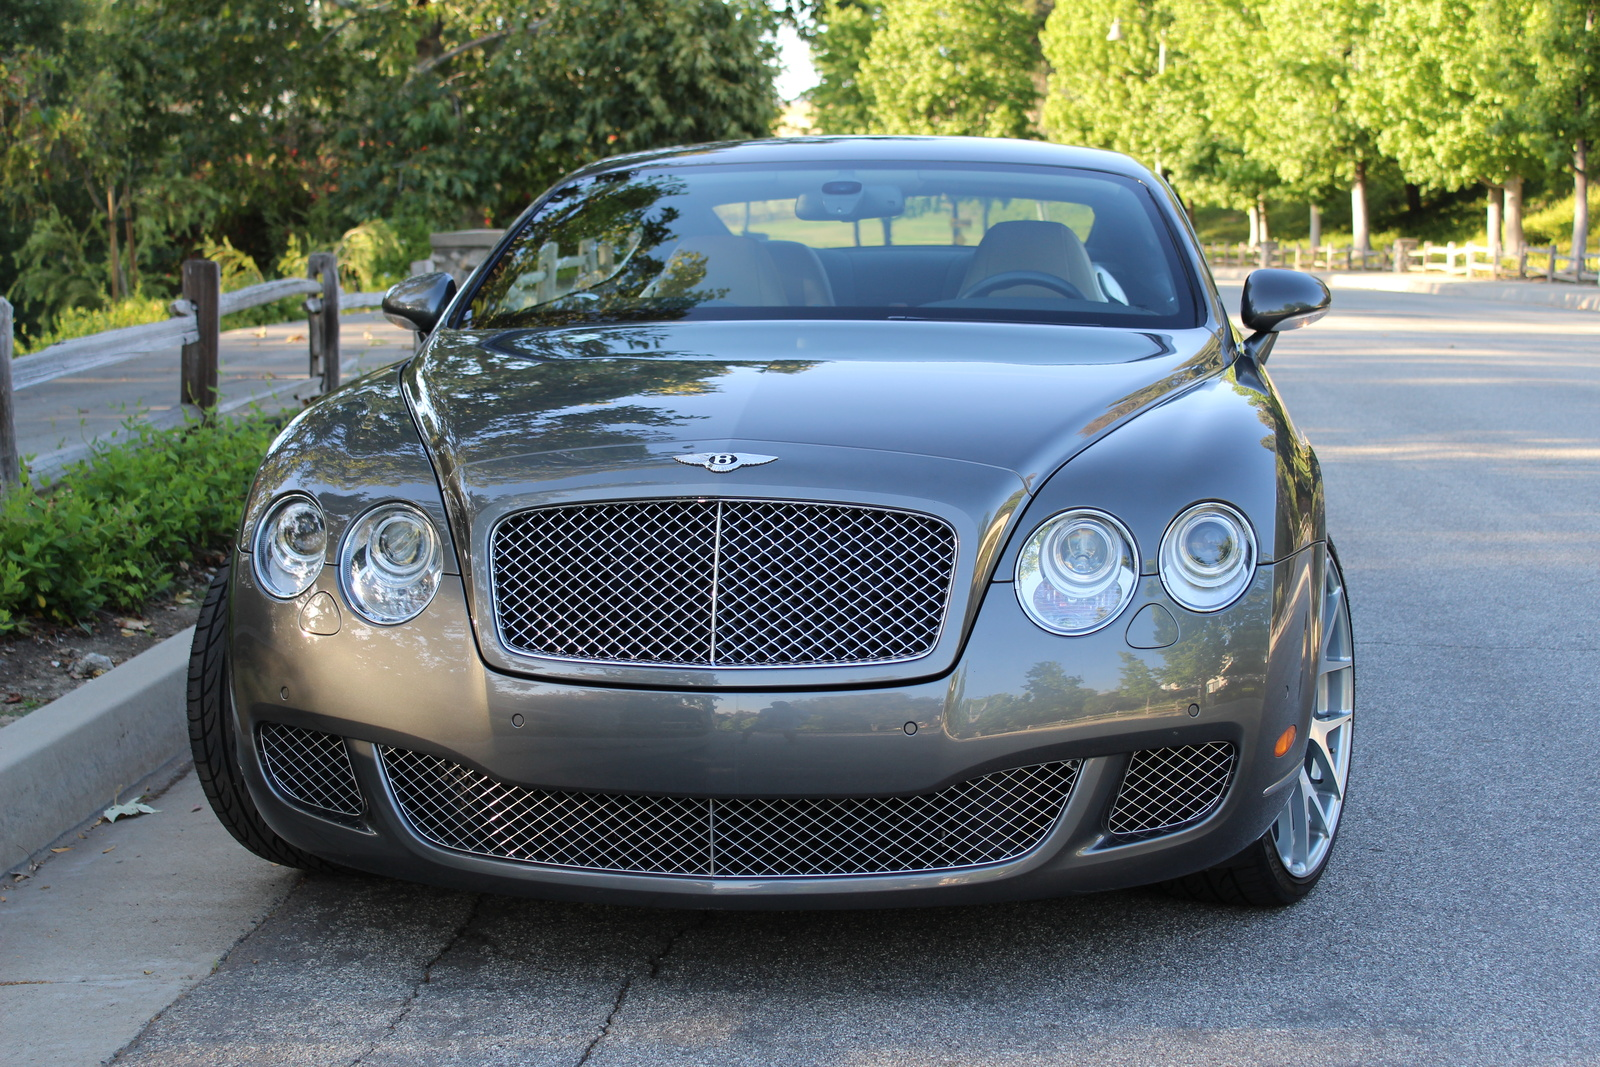 2008 Bentley Continental GT - Pictures - CarGurus